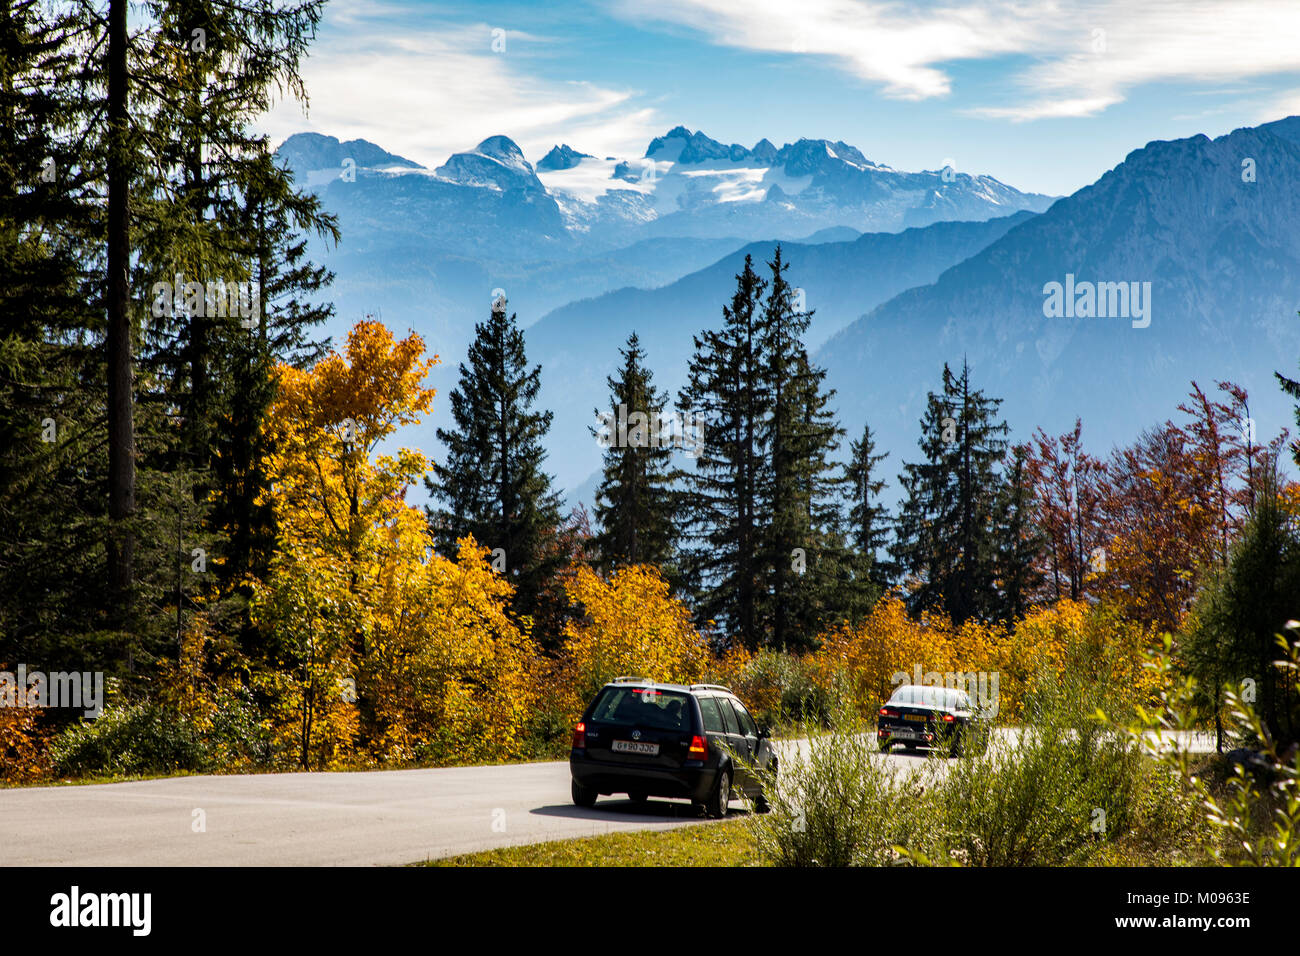 The Loser panoramic road on the Loser Mountain, in the Ausseeer Land, Styria, Austria, behind the Dachstein massif, - Stock Image